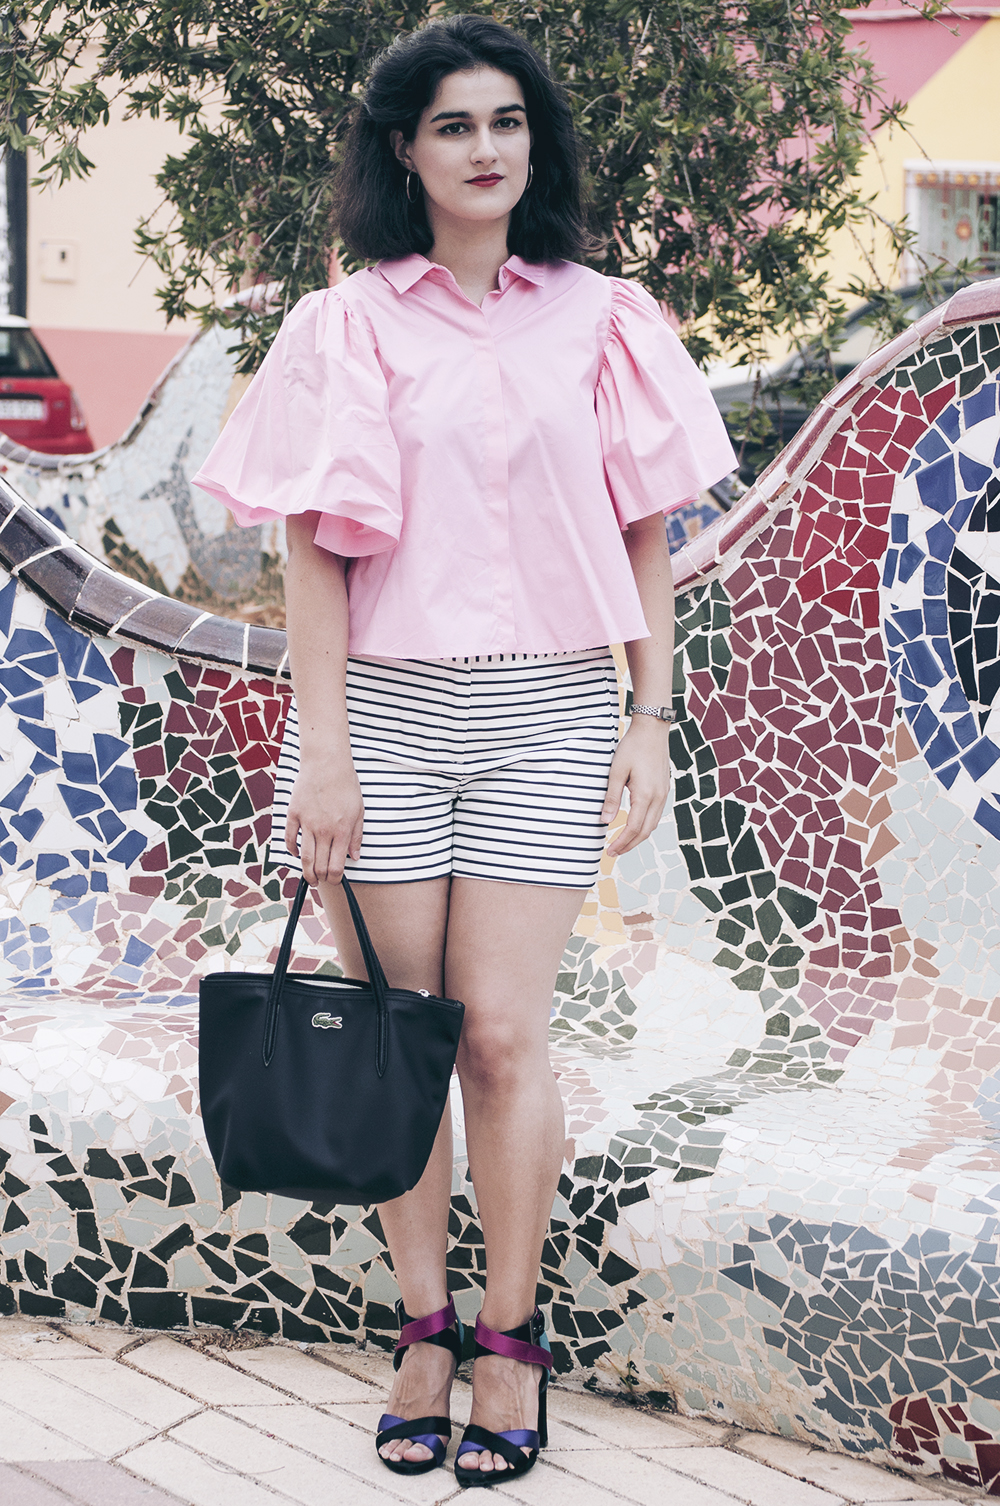 ootd somethingfashion valencia spain bloggers influencers zara pinkshirt dresses summer lookdujour_0070 copia